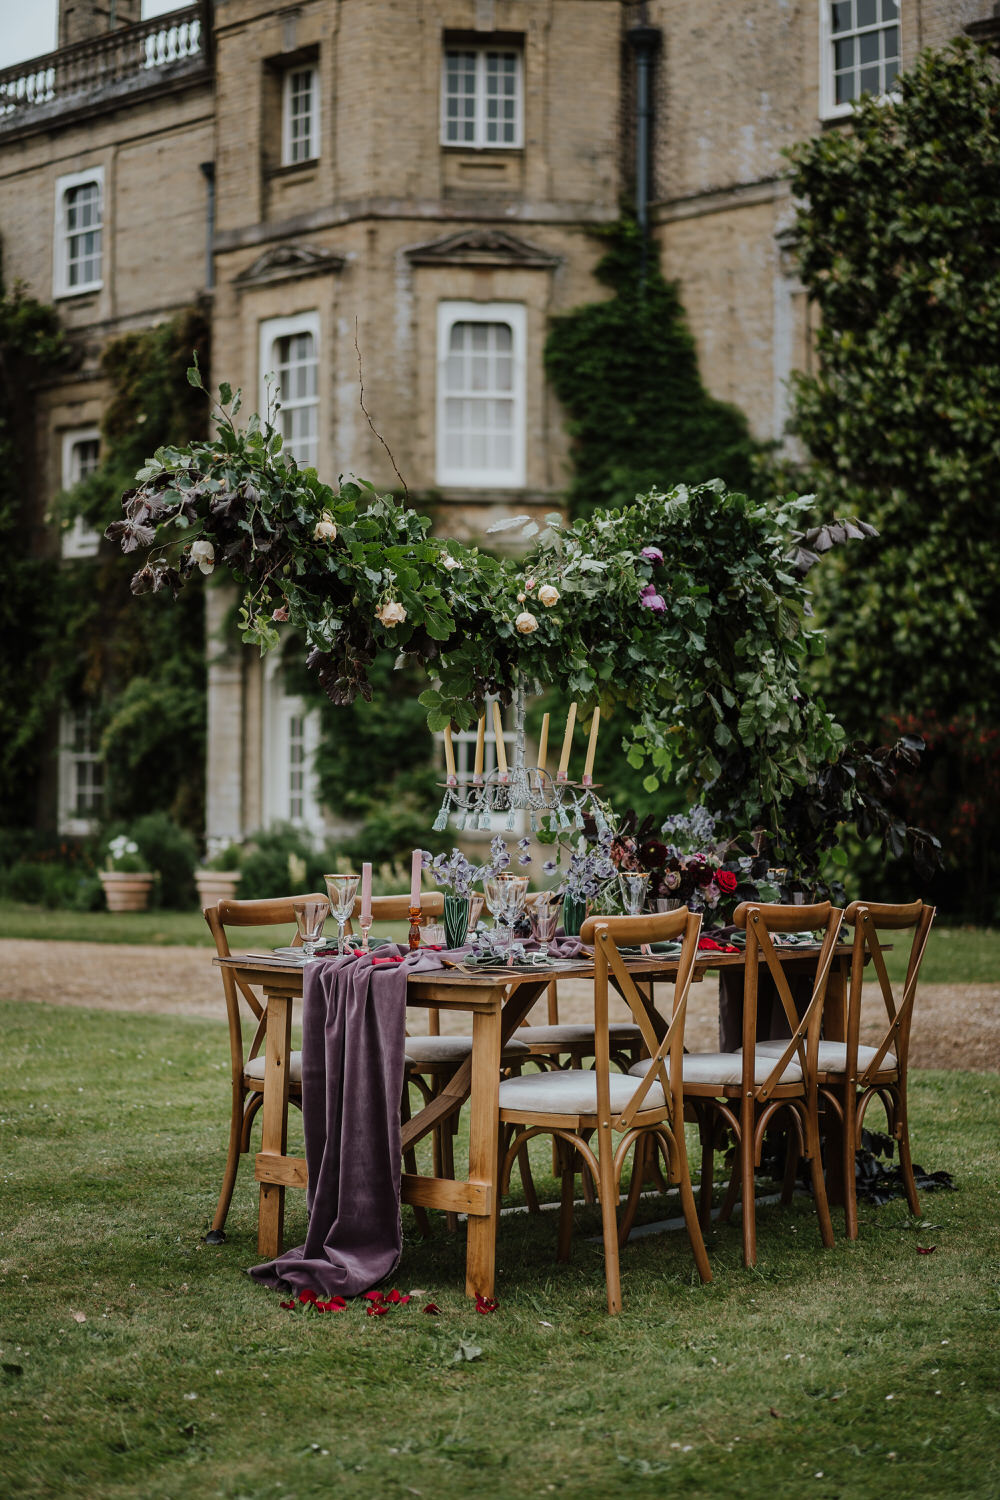 Tablescape Table Decor Outdoor Cloud Suspended Flower Hanging Installation Runner Pylewell Park Wedding New Forest Studio